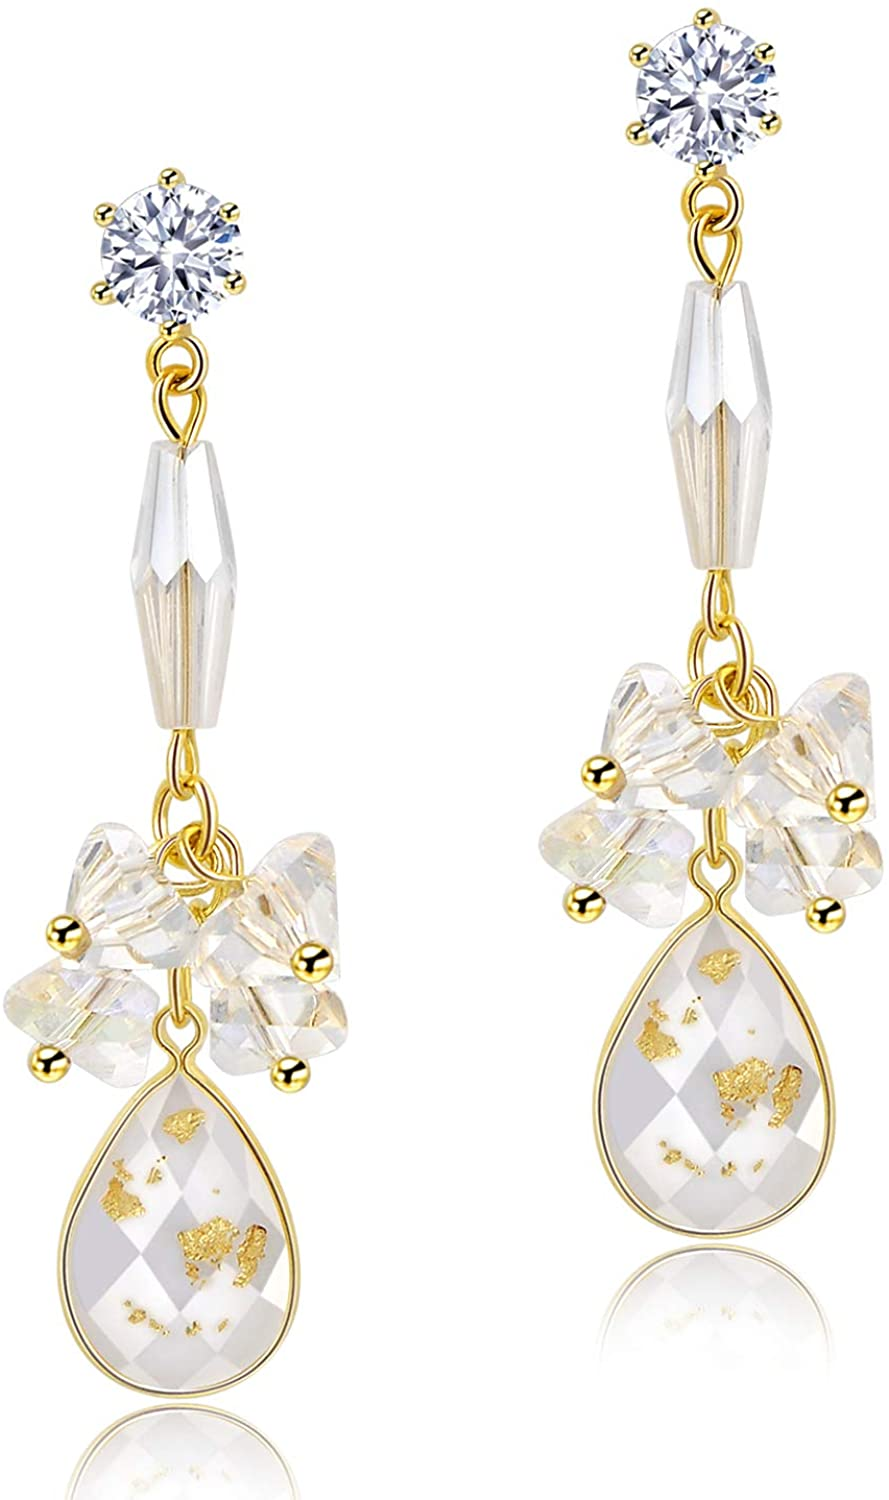 Crystal Gold Plated Dangle Earrings (2